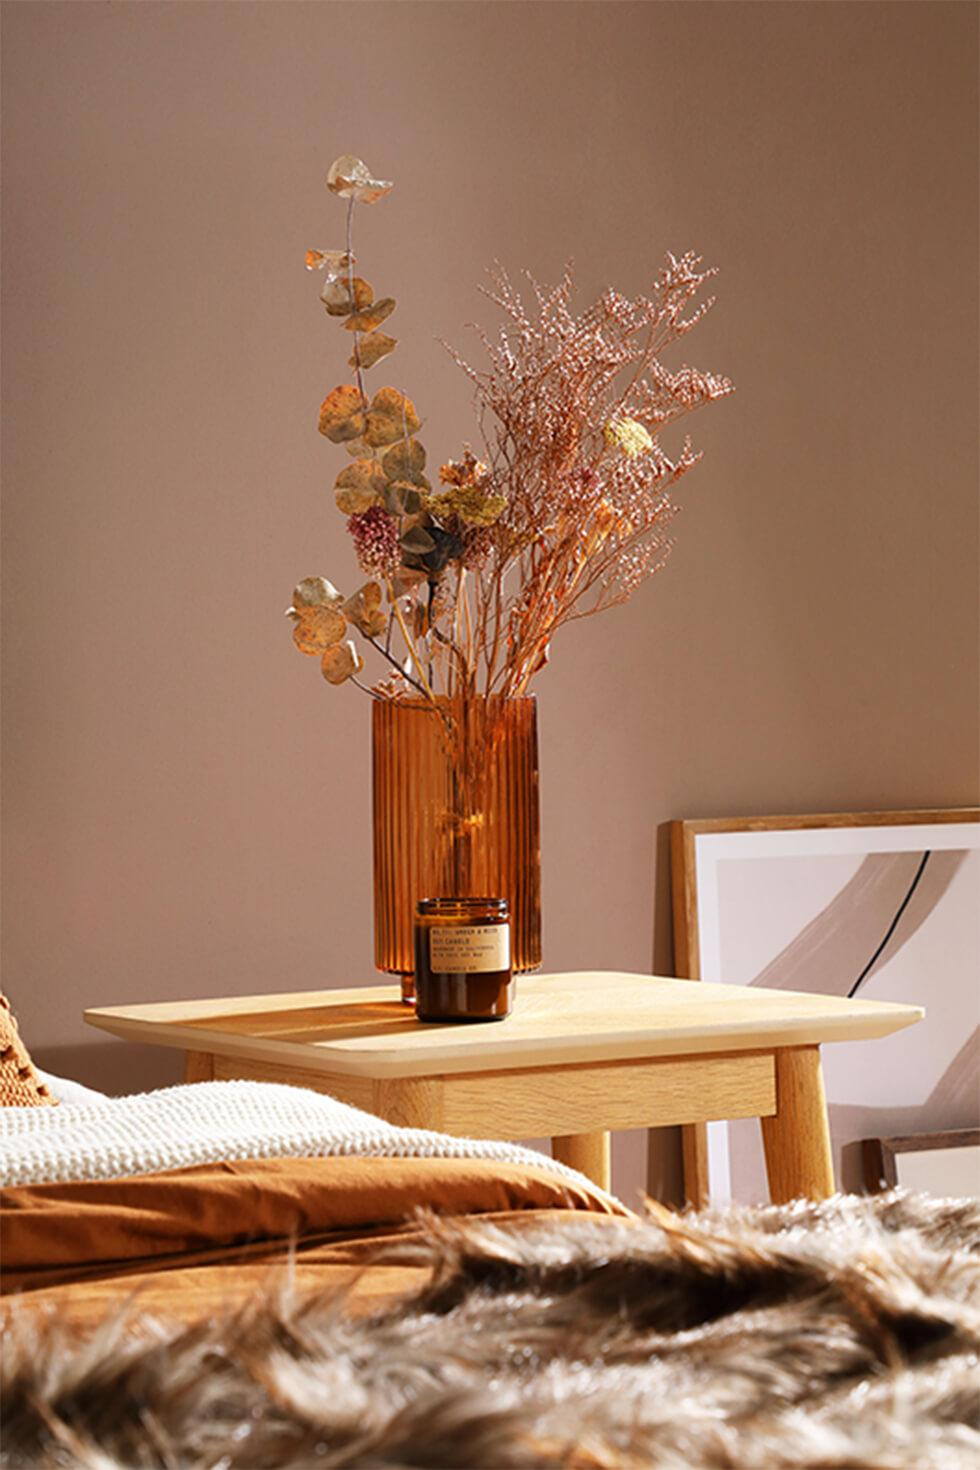 Warm toned room with wooden bedside table, brown glass jar with dried flowers and fur throw